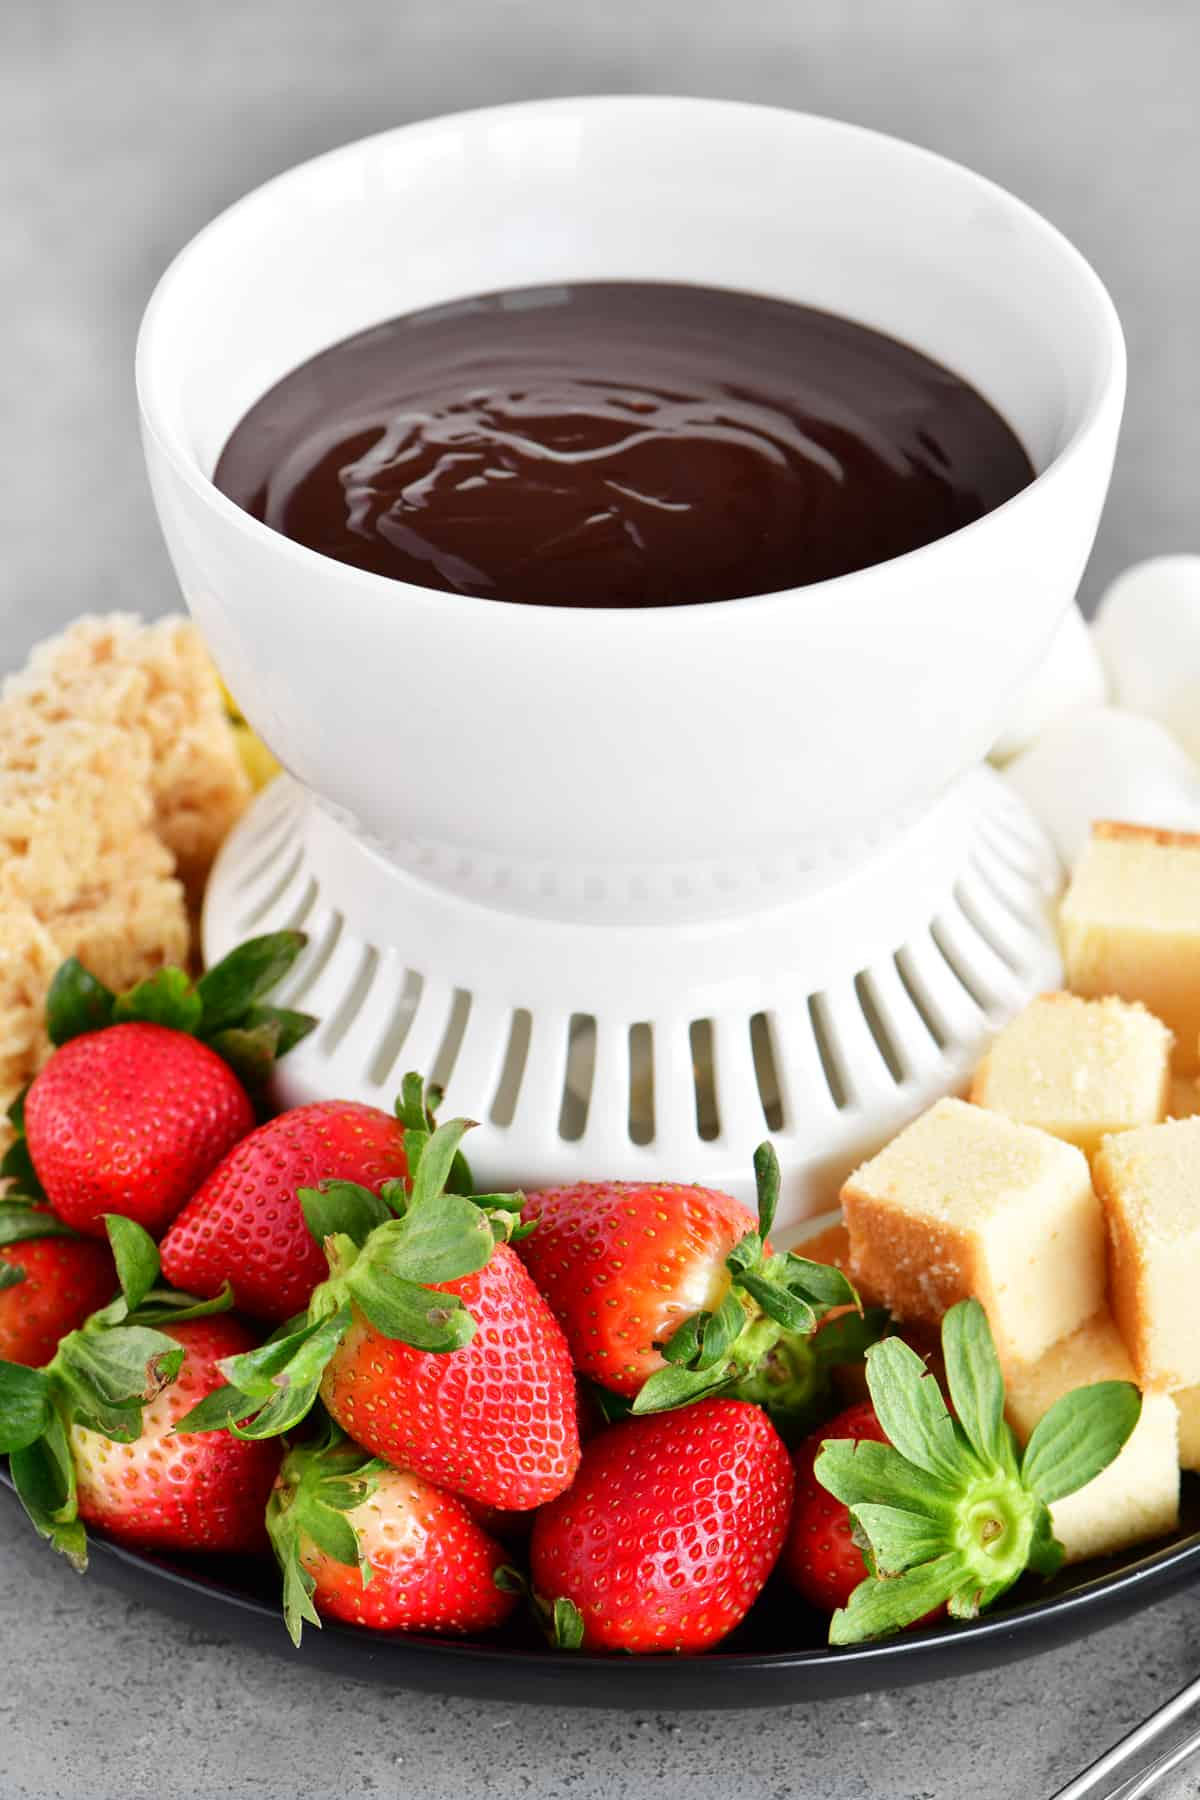 a fondue tray with strawberries and pound cake for dipping in chocolate